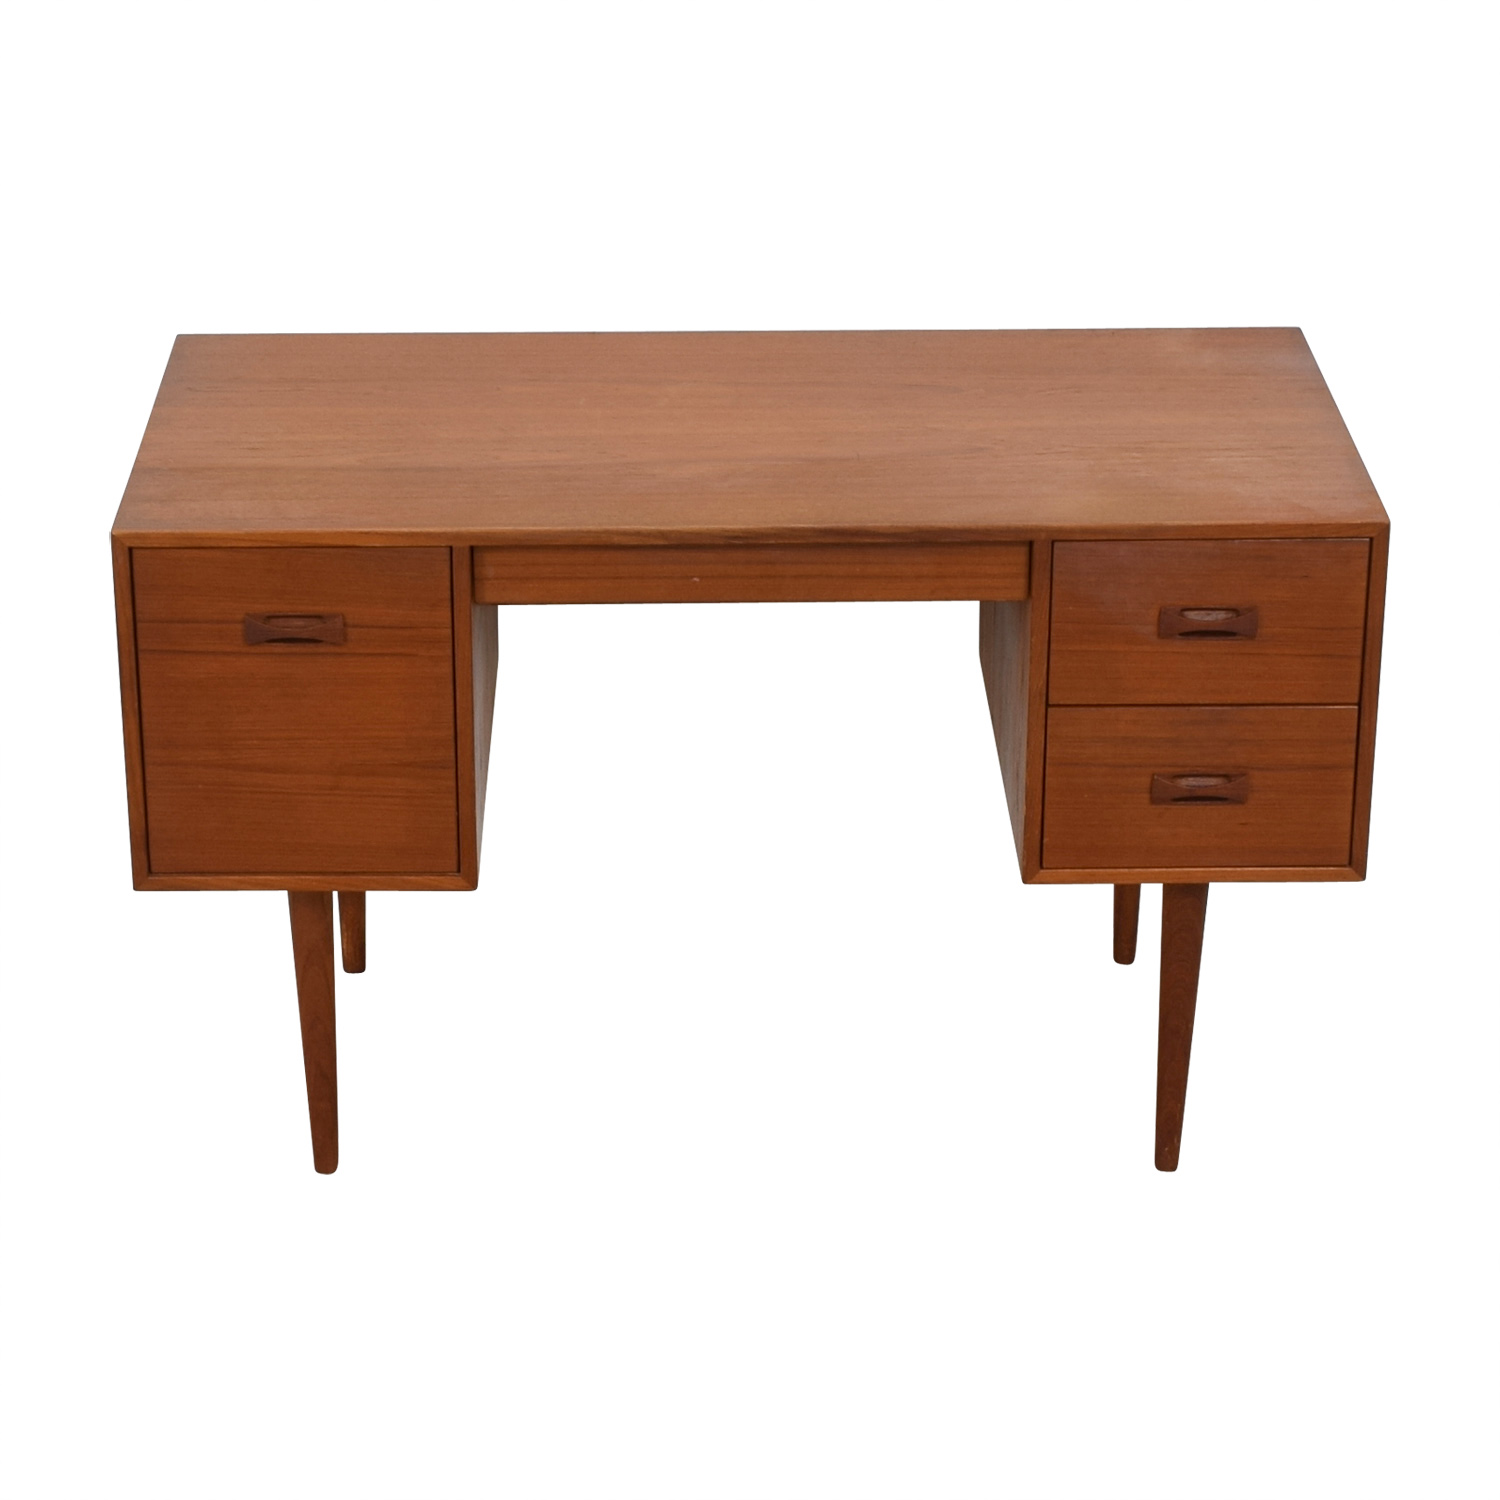 Mid-Century Danish Teak Desk used